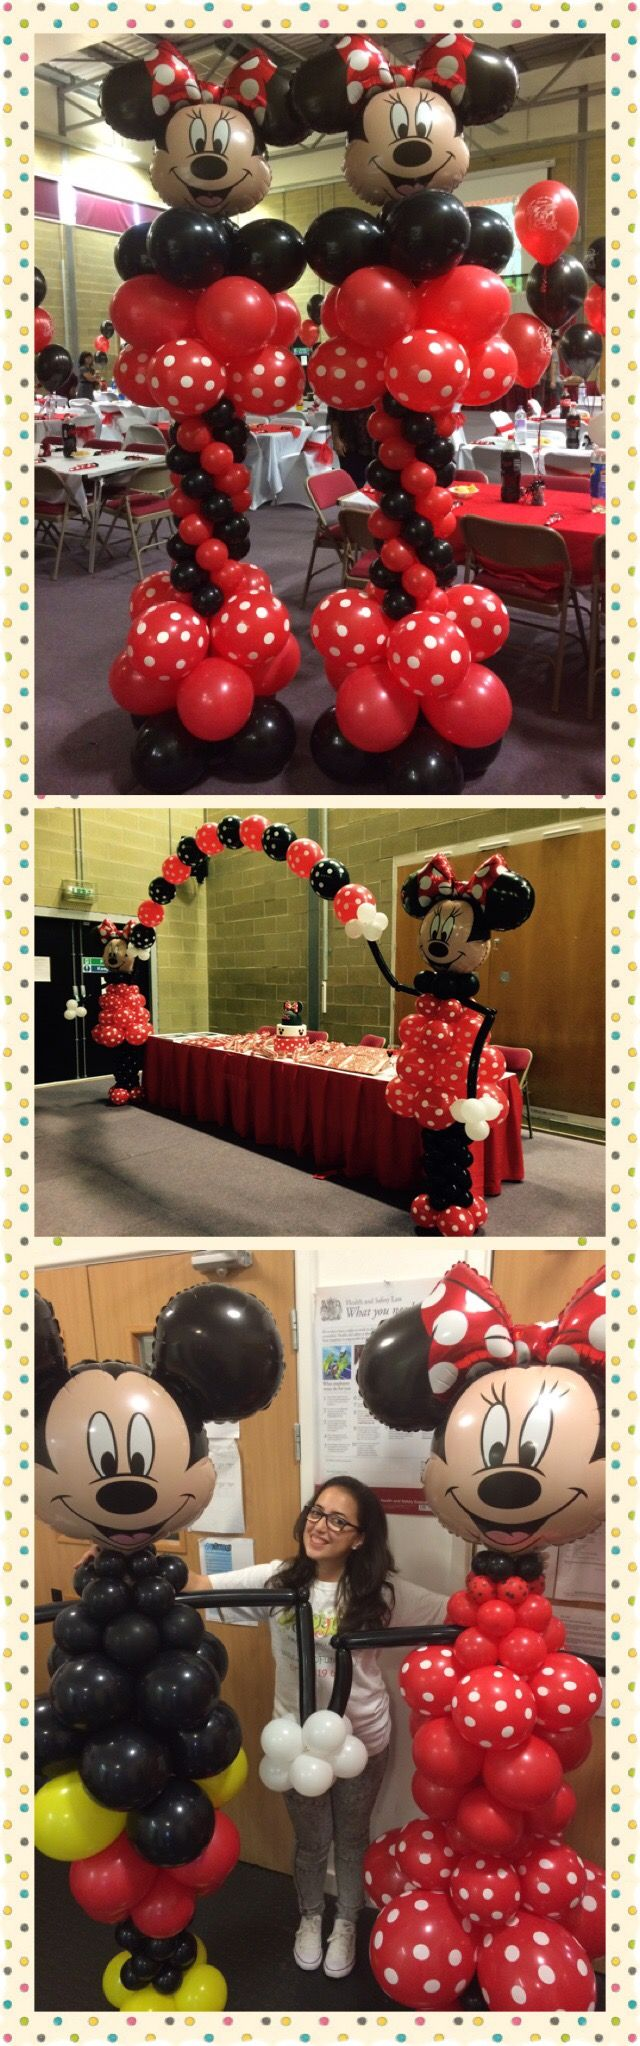 #JoJoFun #Balloon Decorations #MinnieMouse Columns